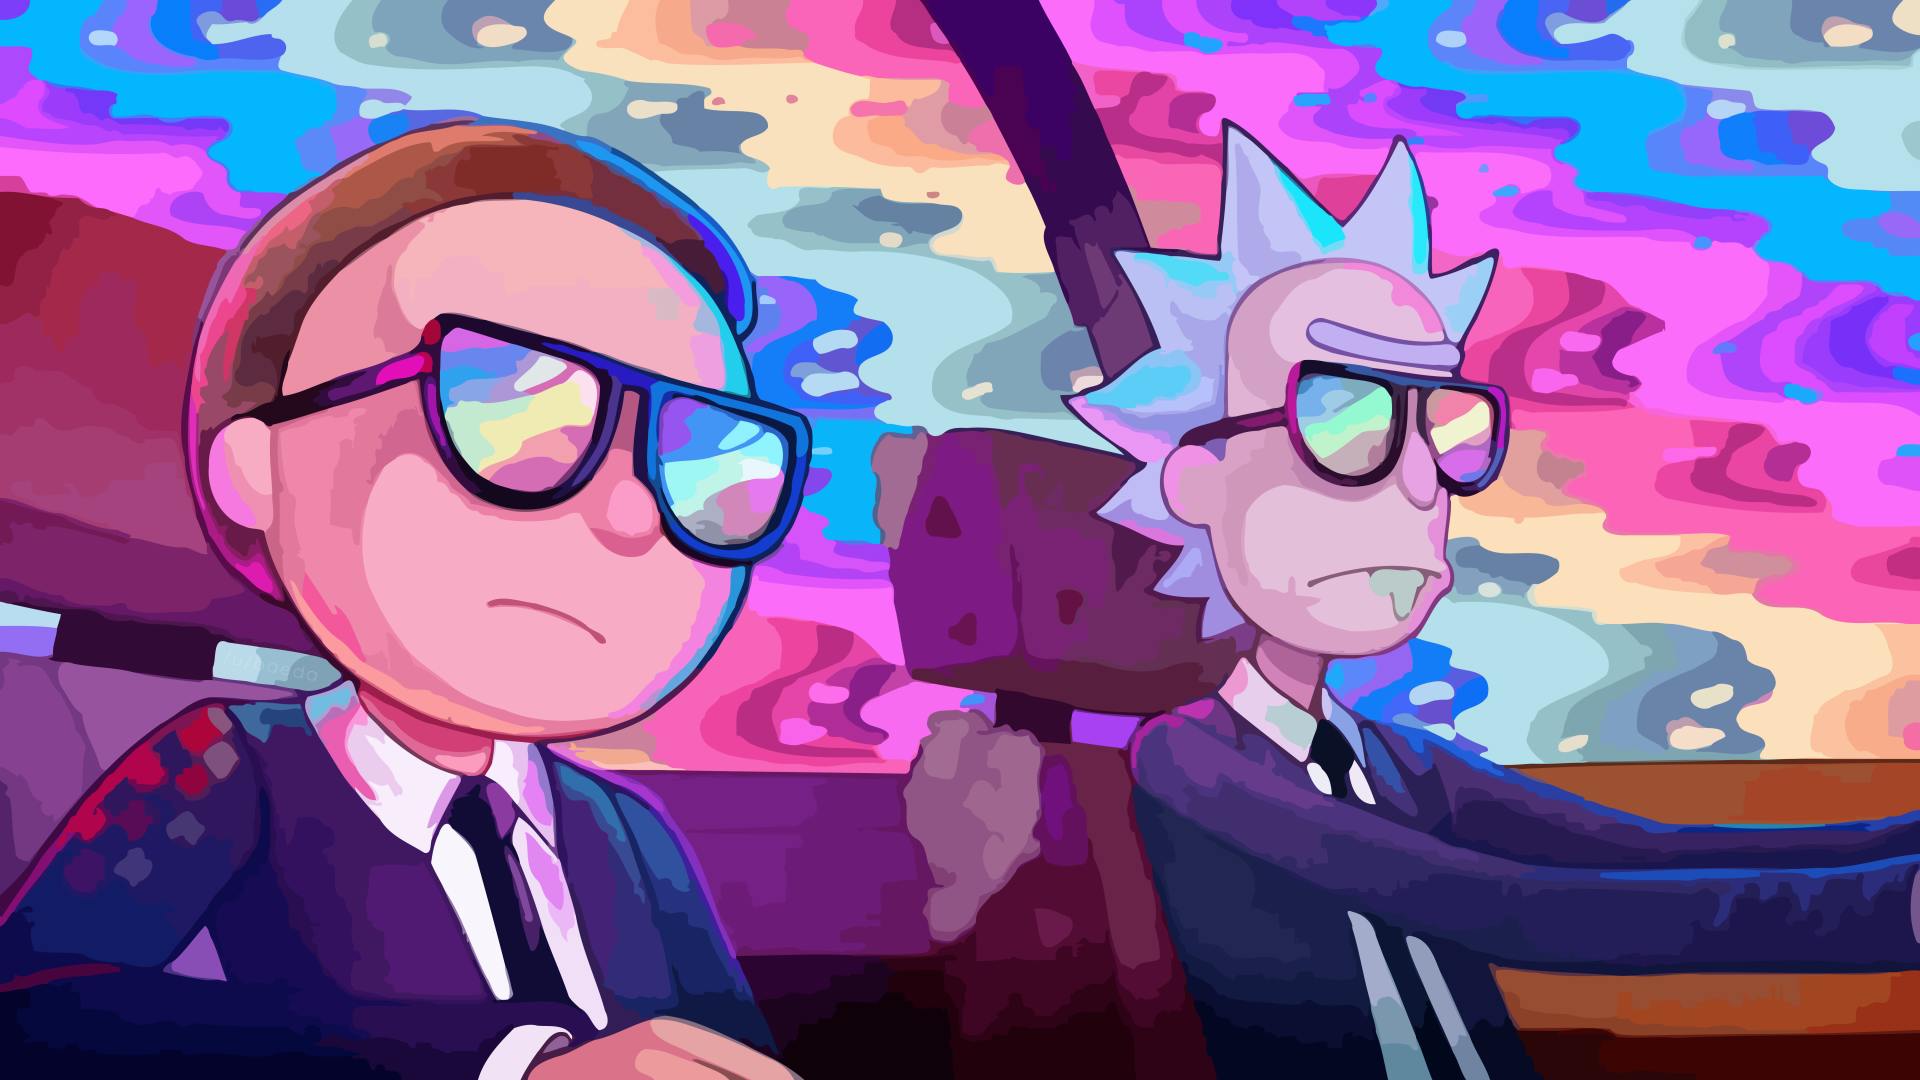 Rick and Morty Season 5 - Episodes List, Release Date & Total Number of Episodes